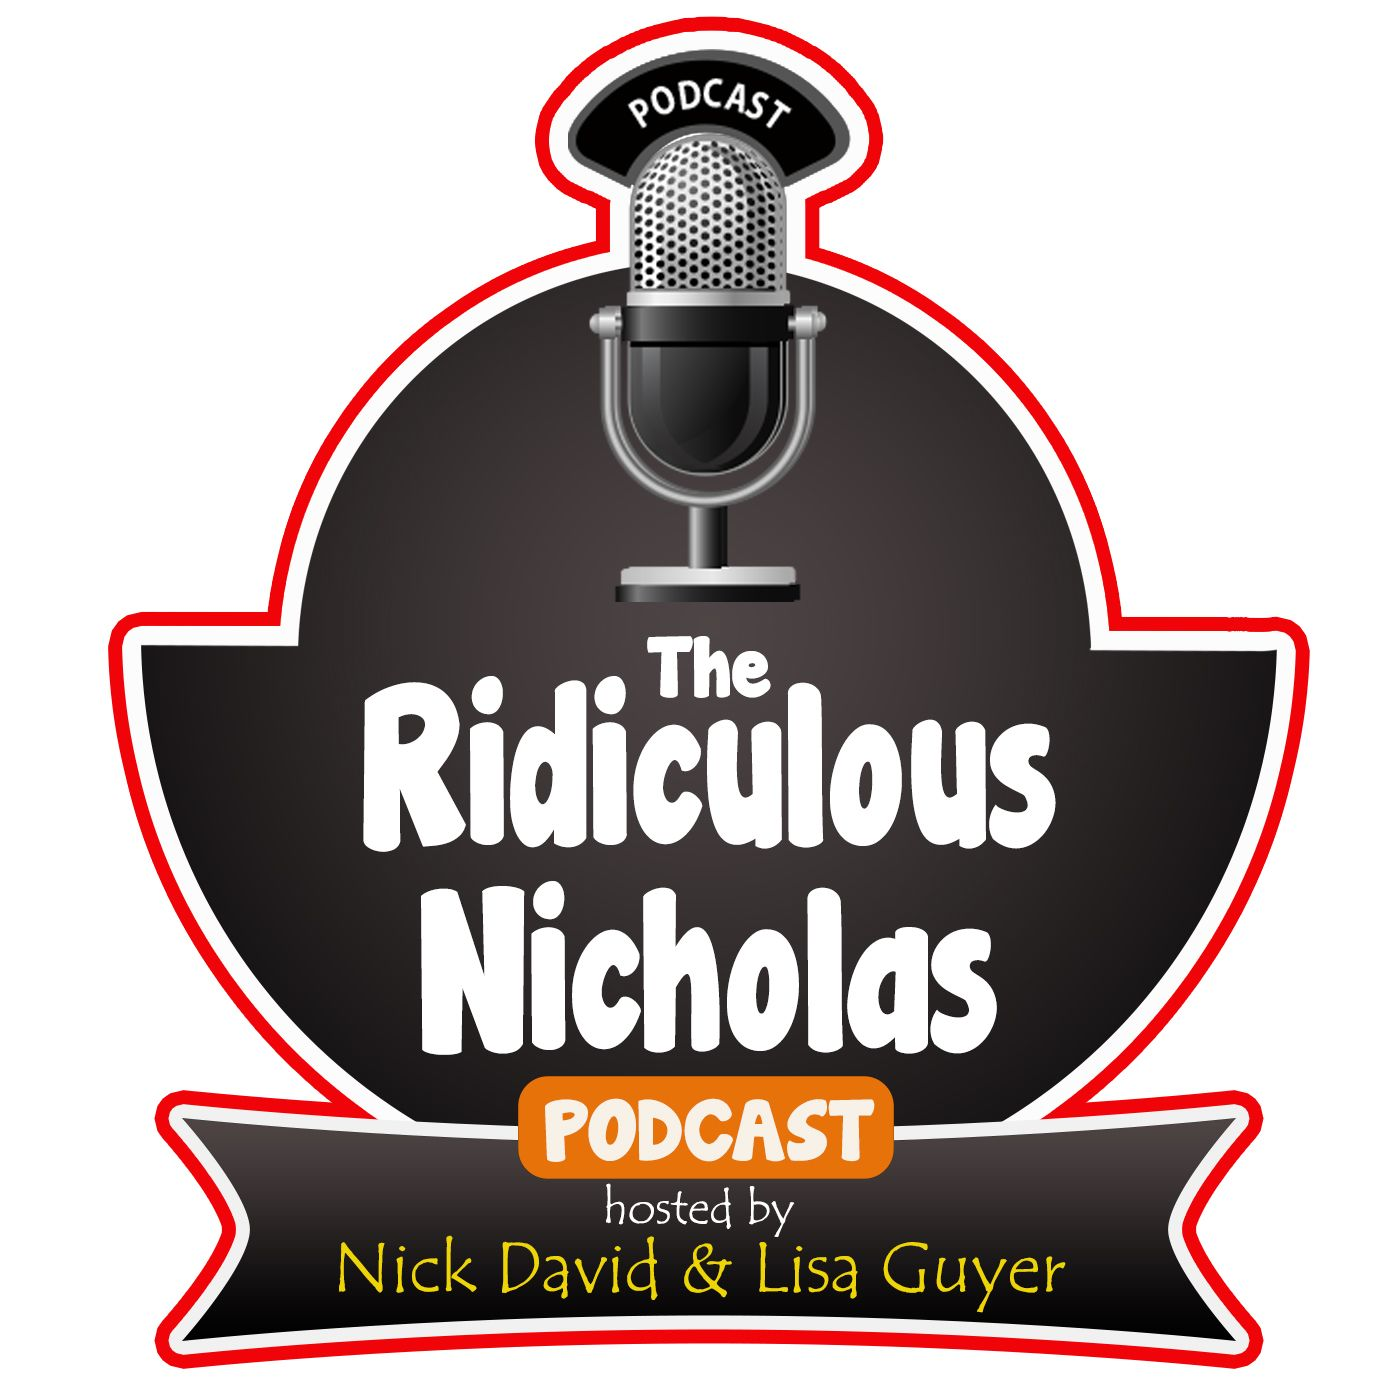 Ridiculous Nicholas Podcast